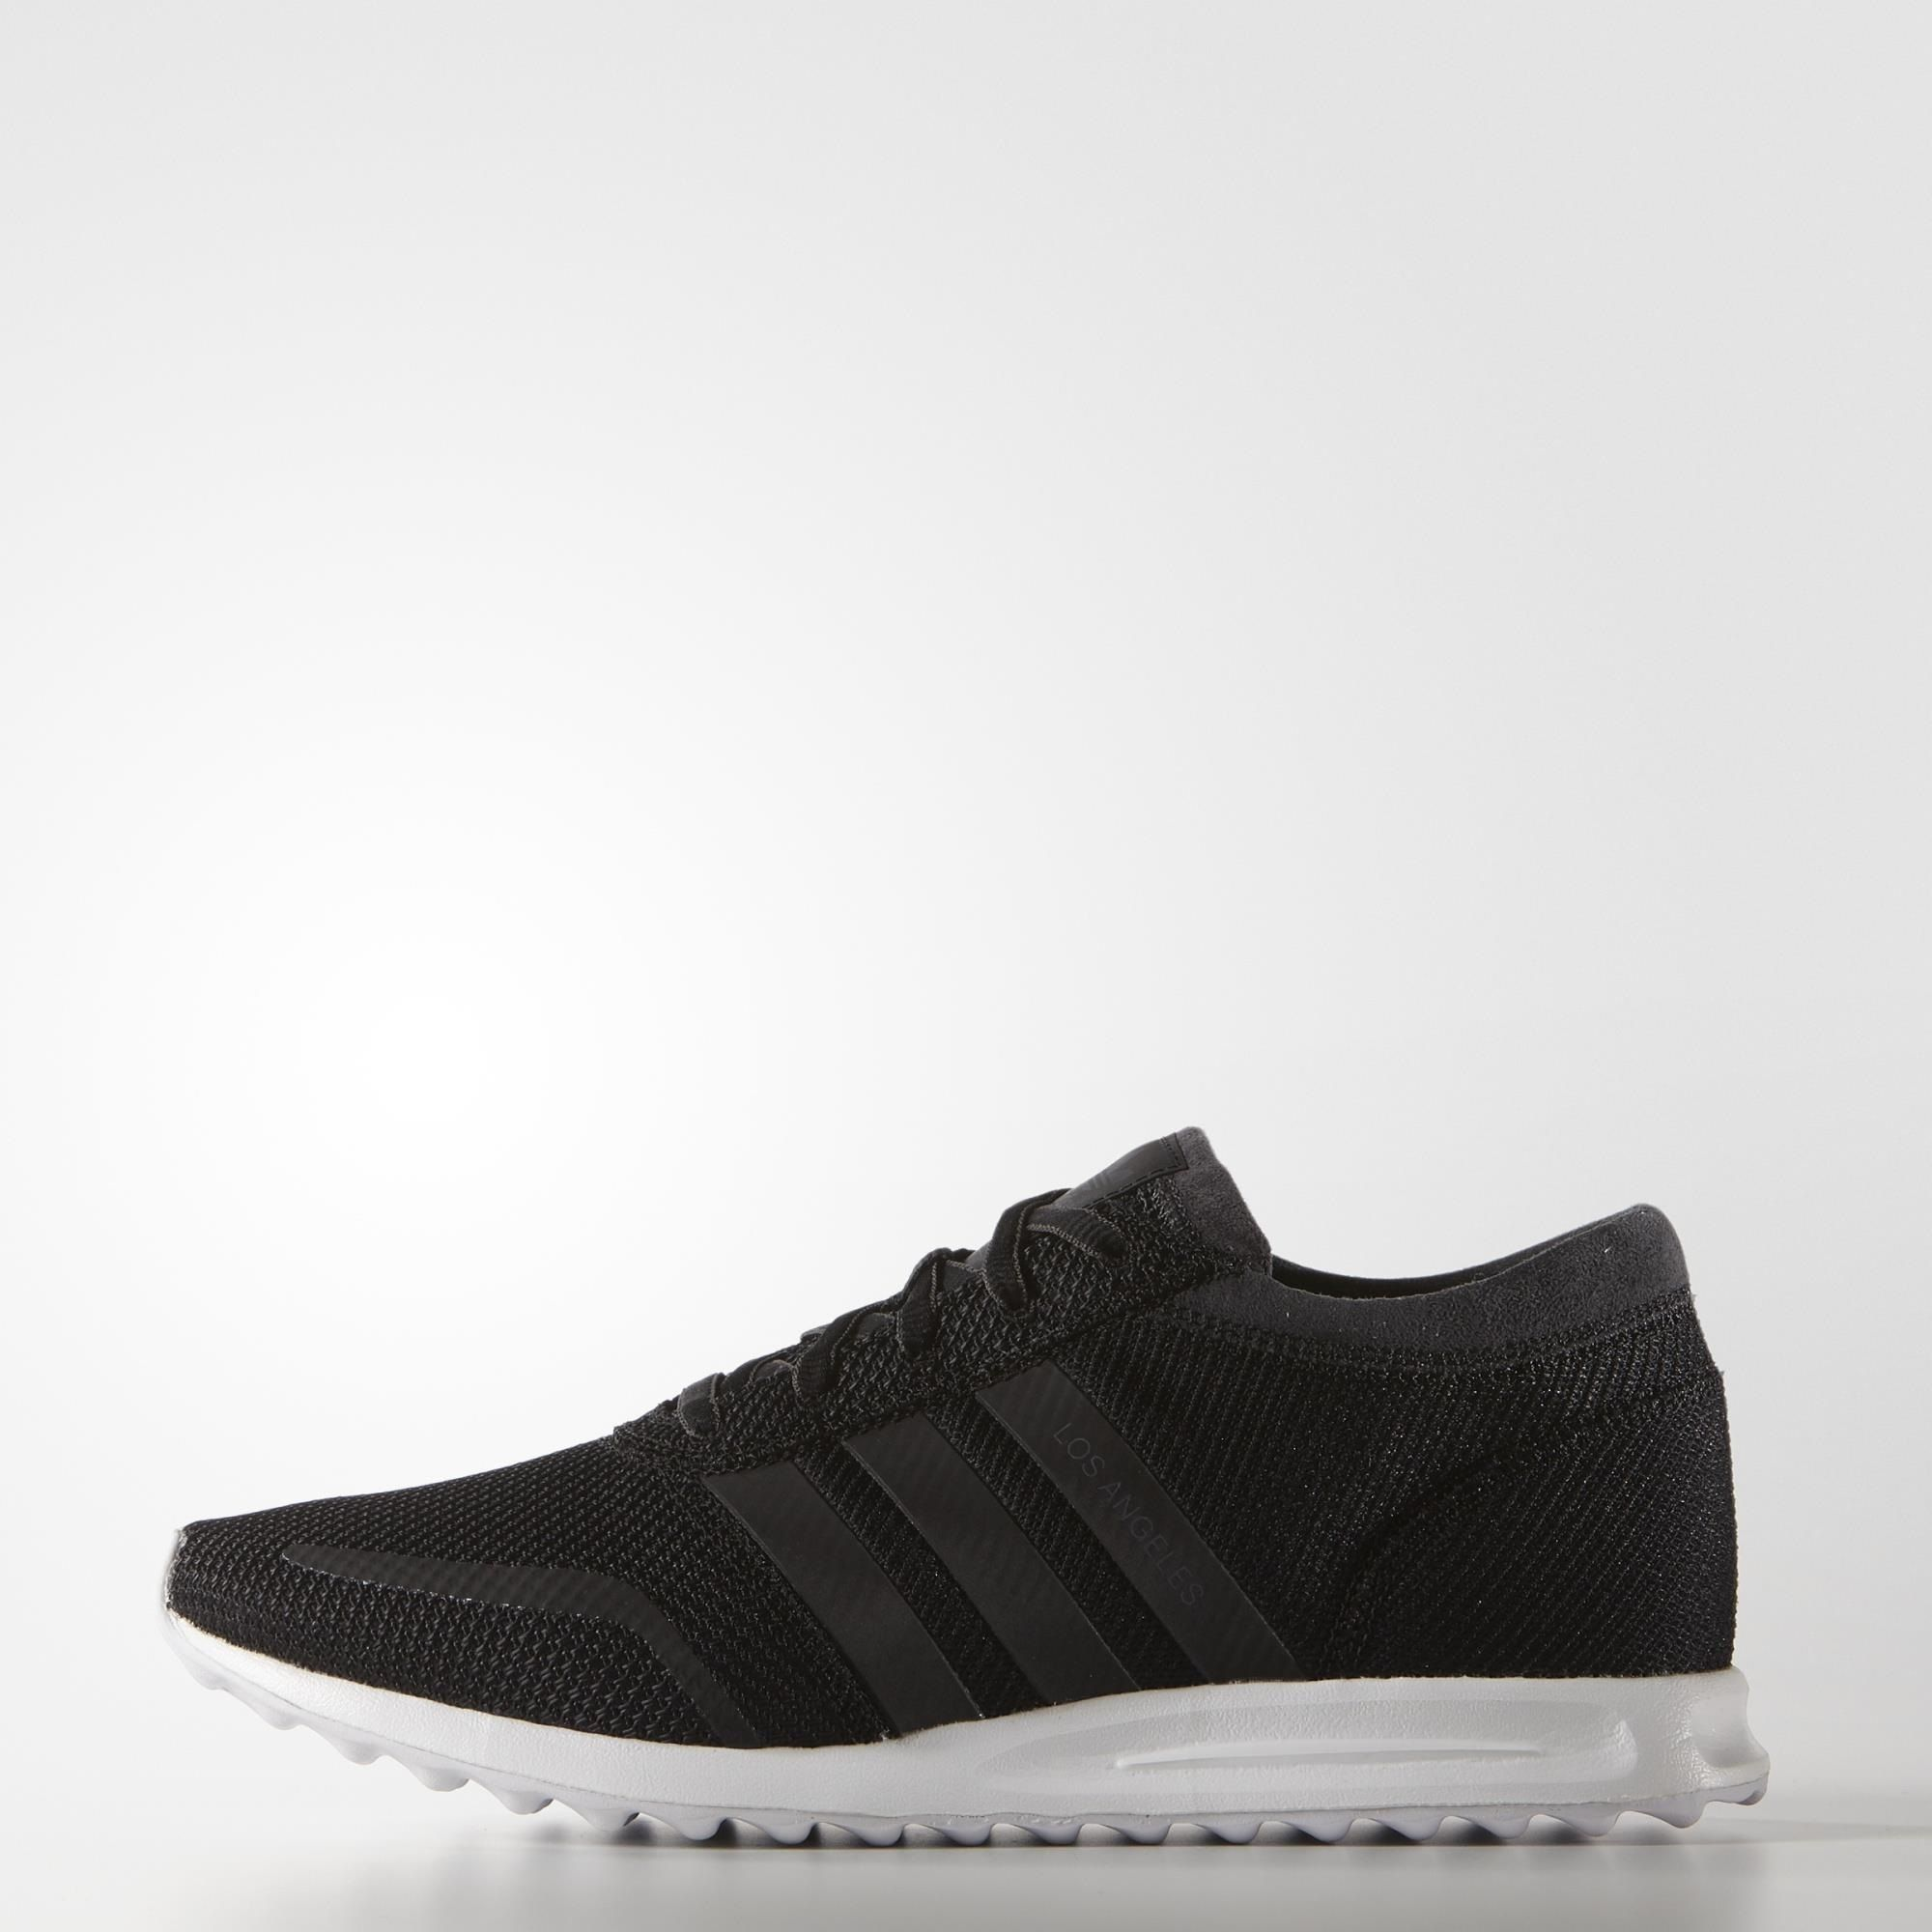 Los Angeles Star Studded Sporty Street Style Is The Inspiration For These Men S Shoes Featuring Iconic Los Angeles Shoes Duck Shoes Womens Adidas Golf Shoes